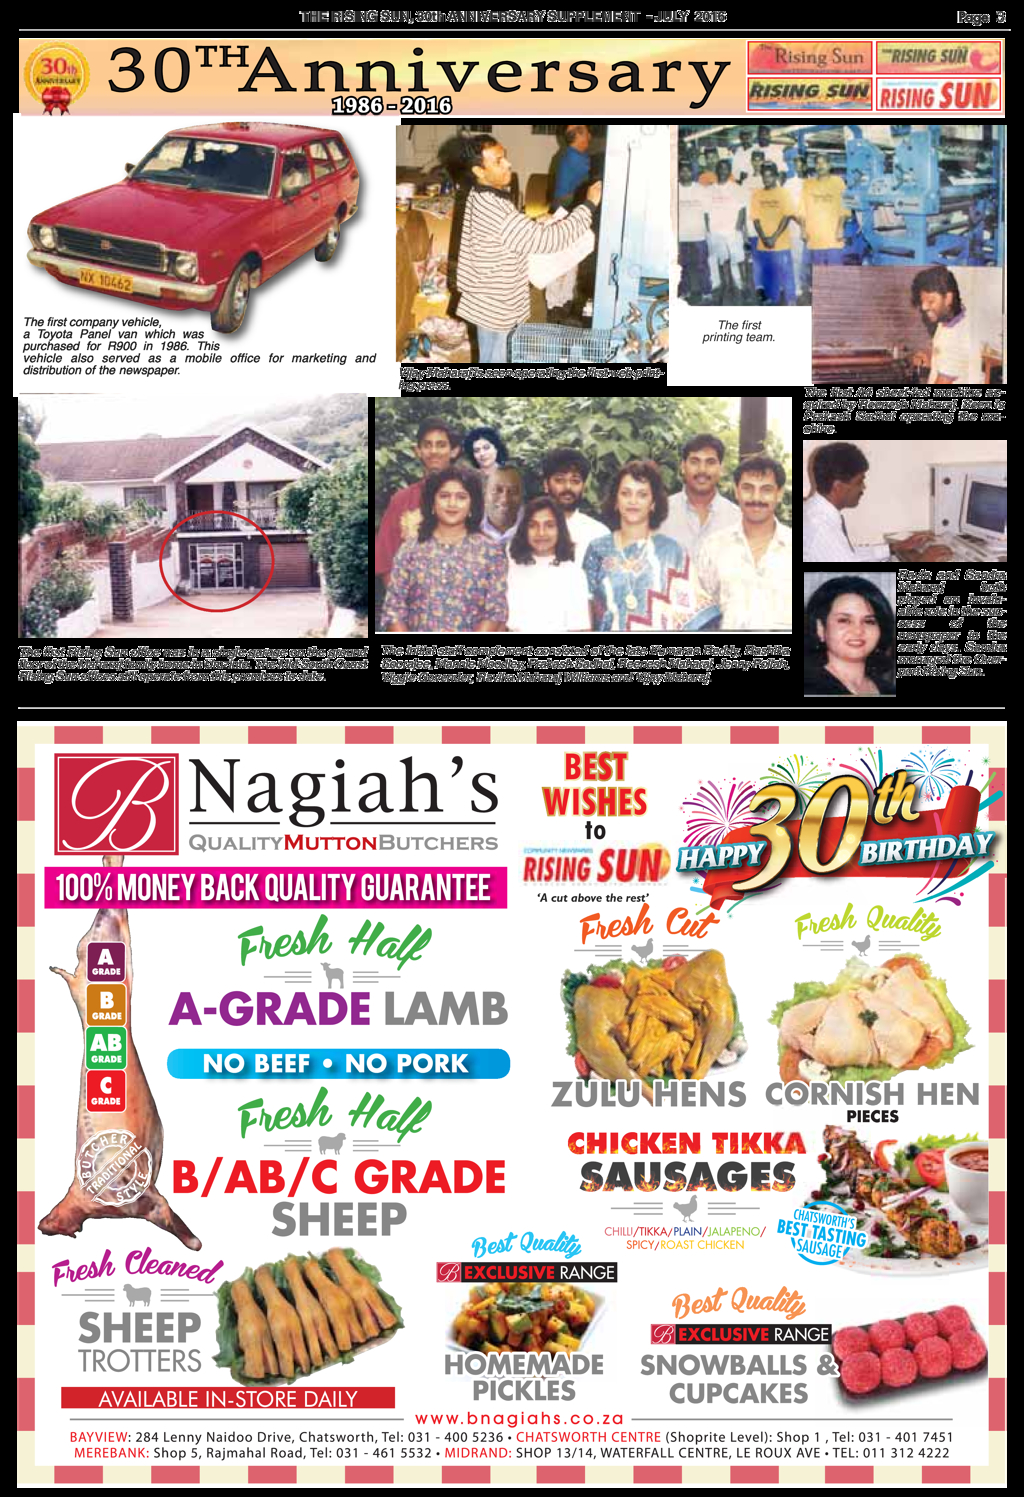 celebrating-our-30th-anniversary-epapers-page-3